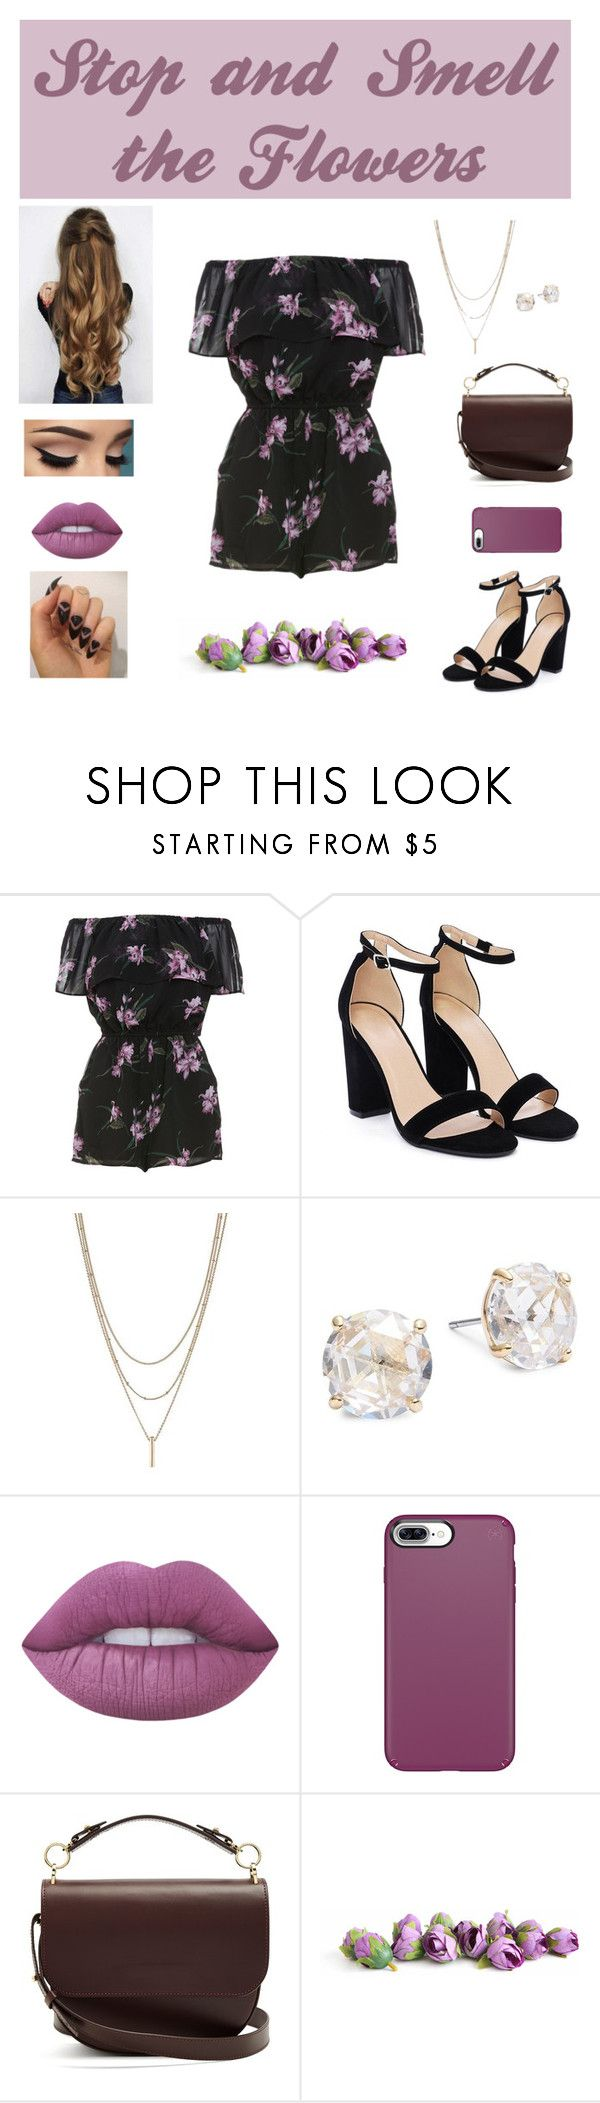 """""""Life is Too Short to Rush"""" by beauty55 ❤ liked on Polyvore featuring BB Dakota, Nasty Gal, Kate Spade, Lime Crime, Speck and Sophie Hulme"""